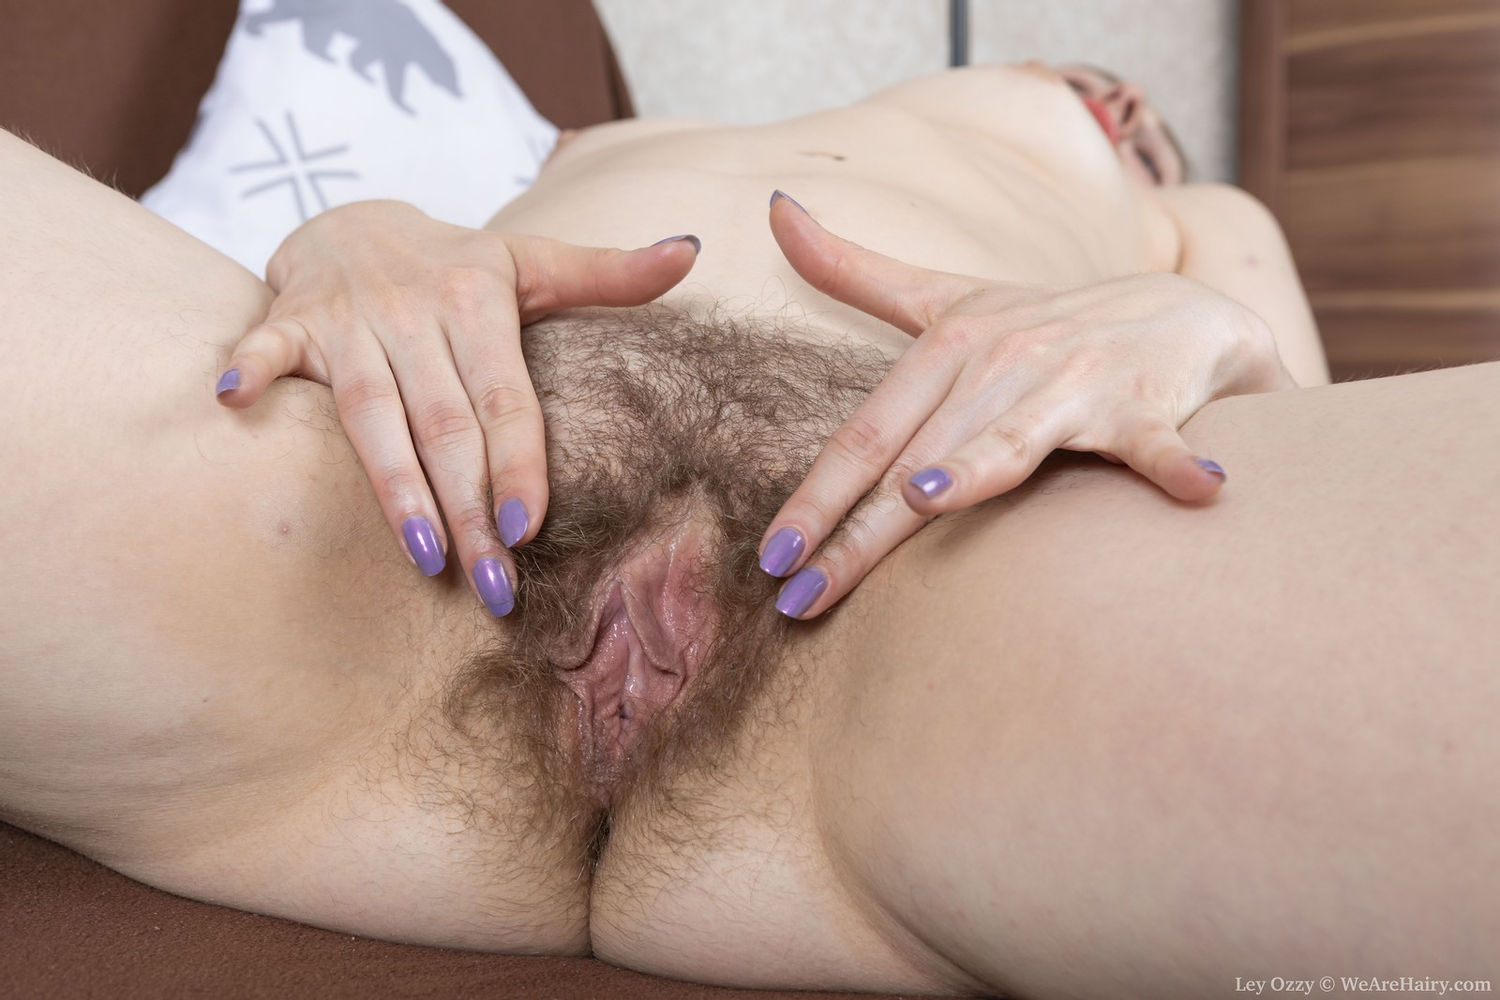 Amateur mature sex model Ley Ozzy spreading legs to show hairy pussy and cameltoe with big clit